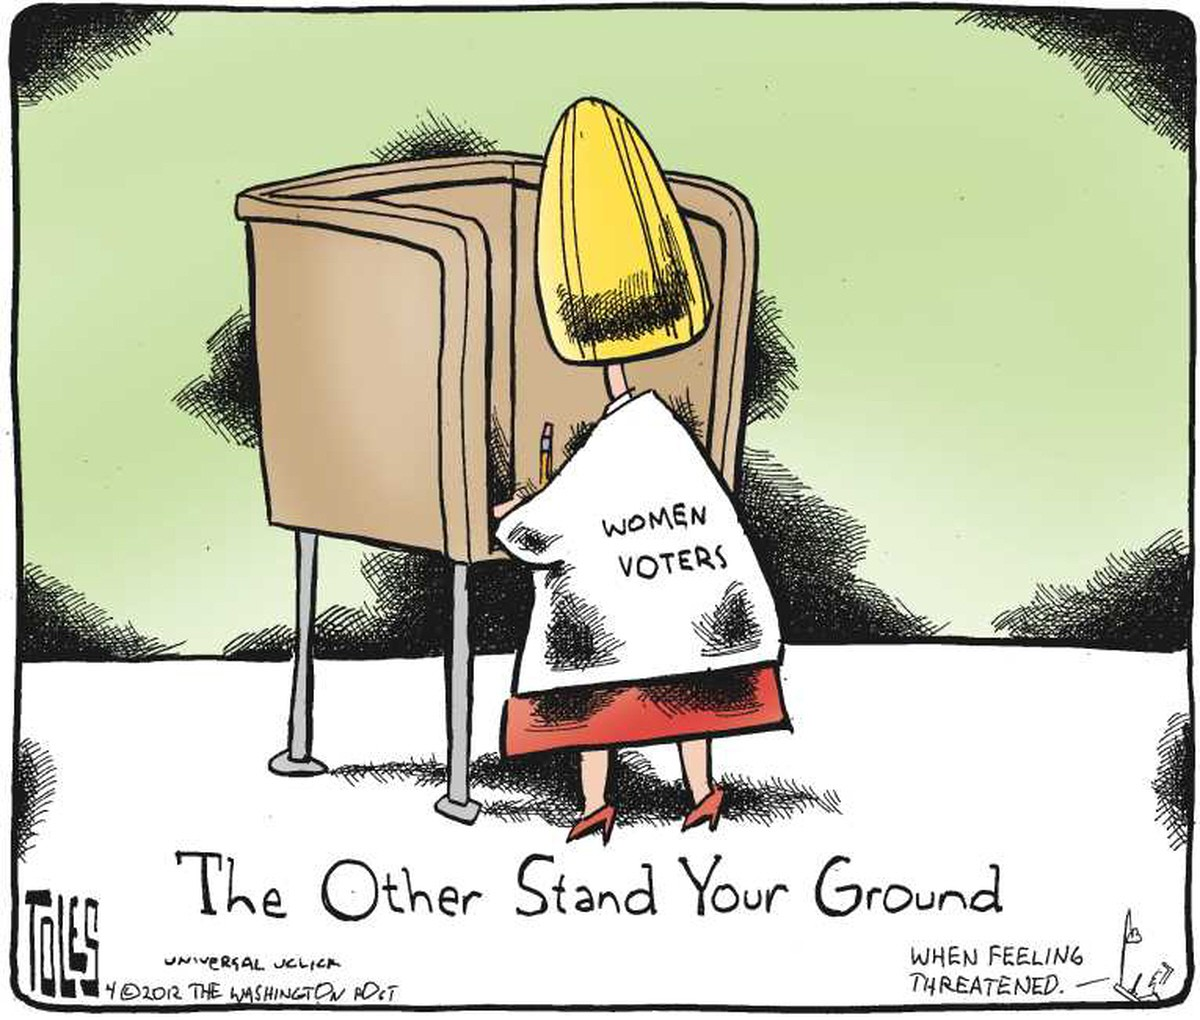 00 Toles. Women Voters. The Other Stand Your Ground. 06.12